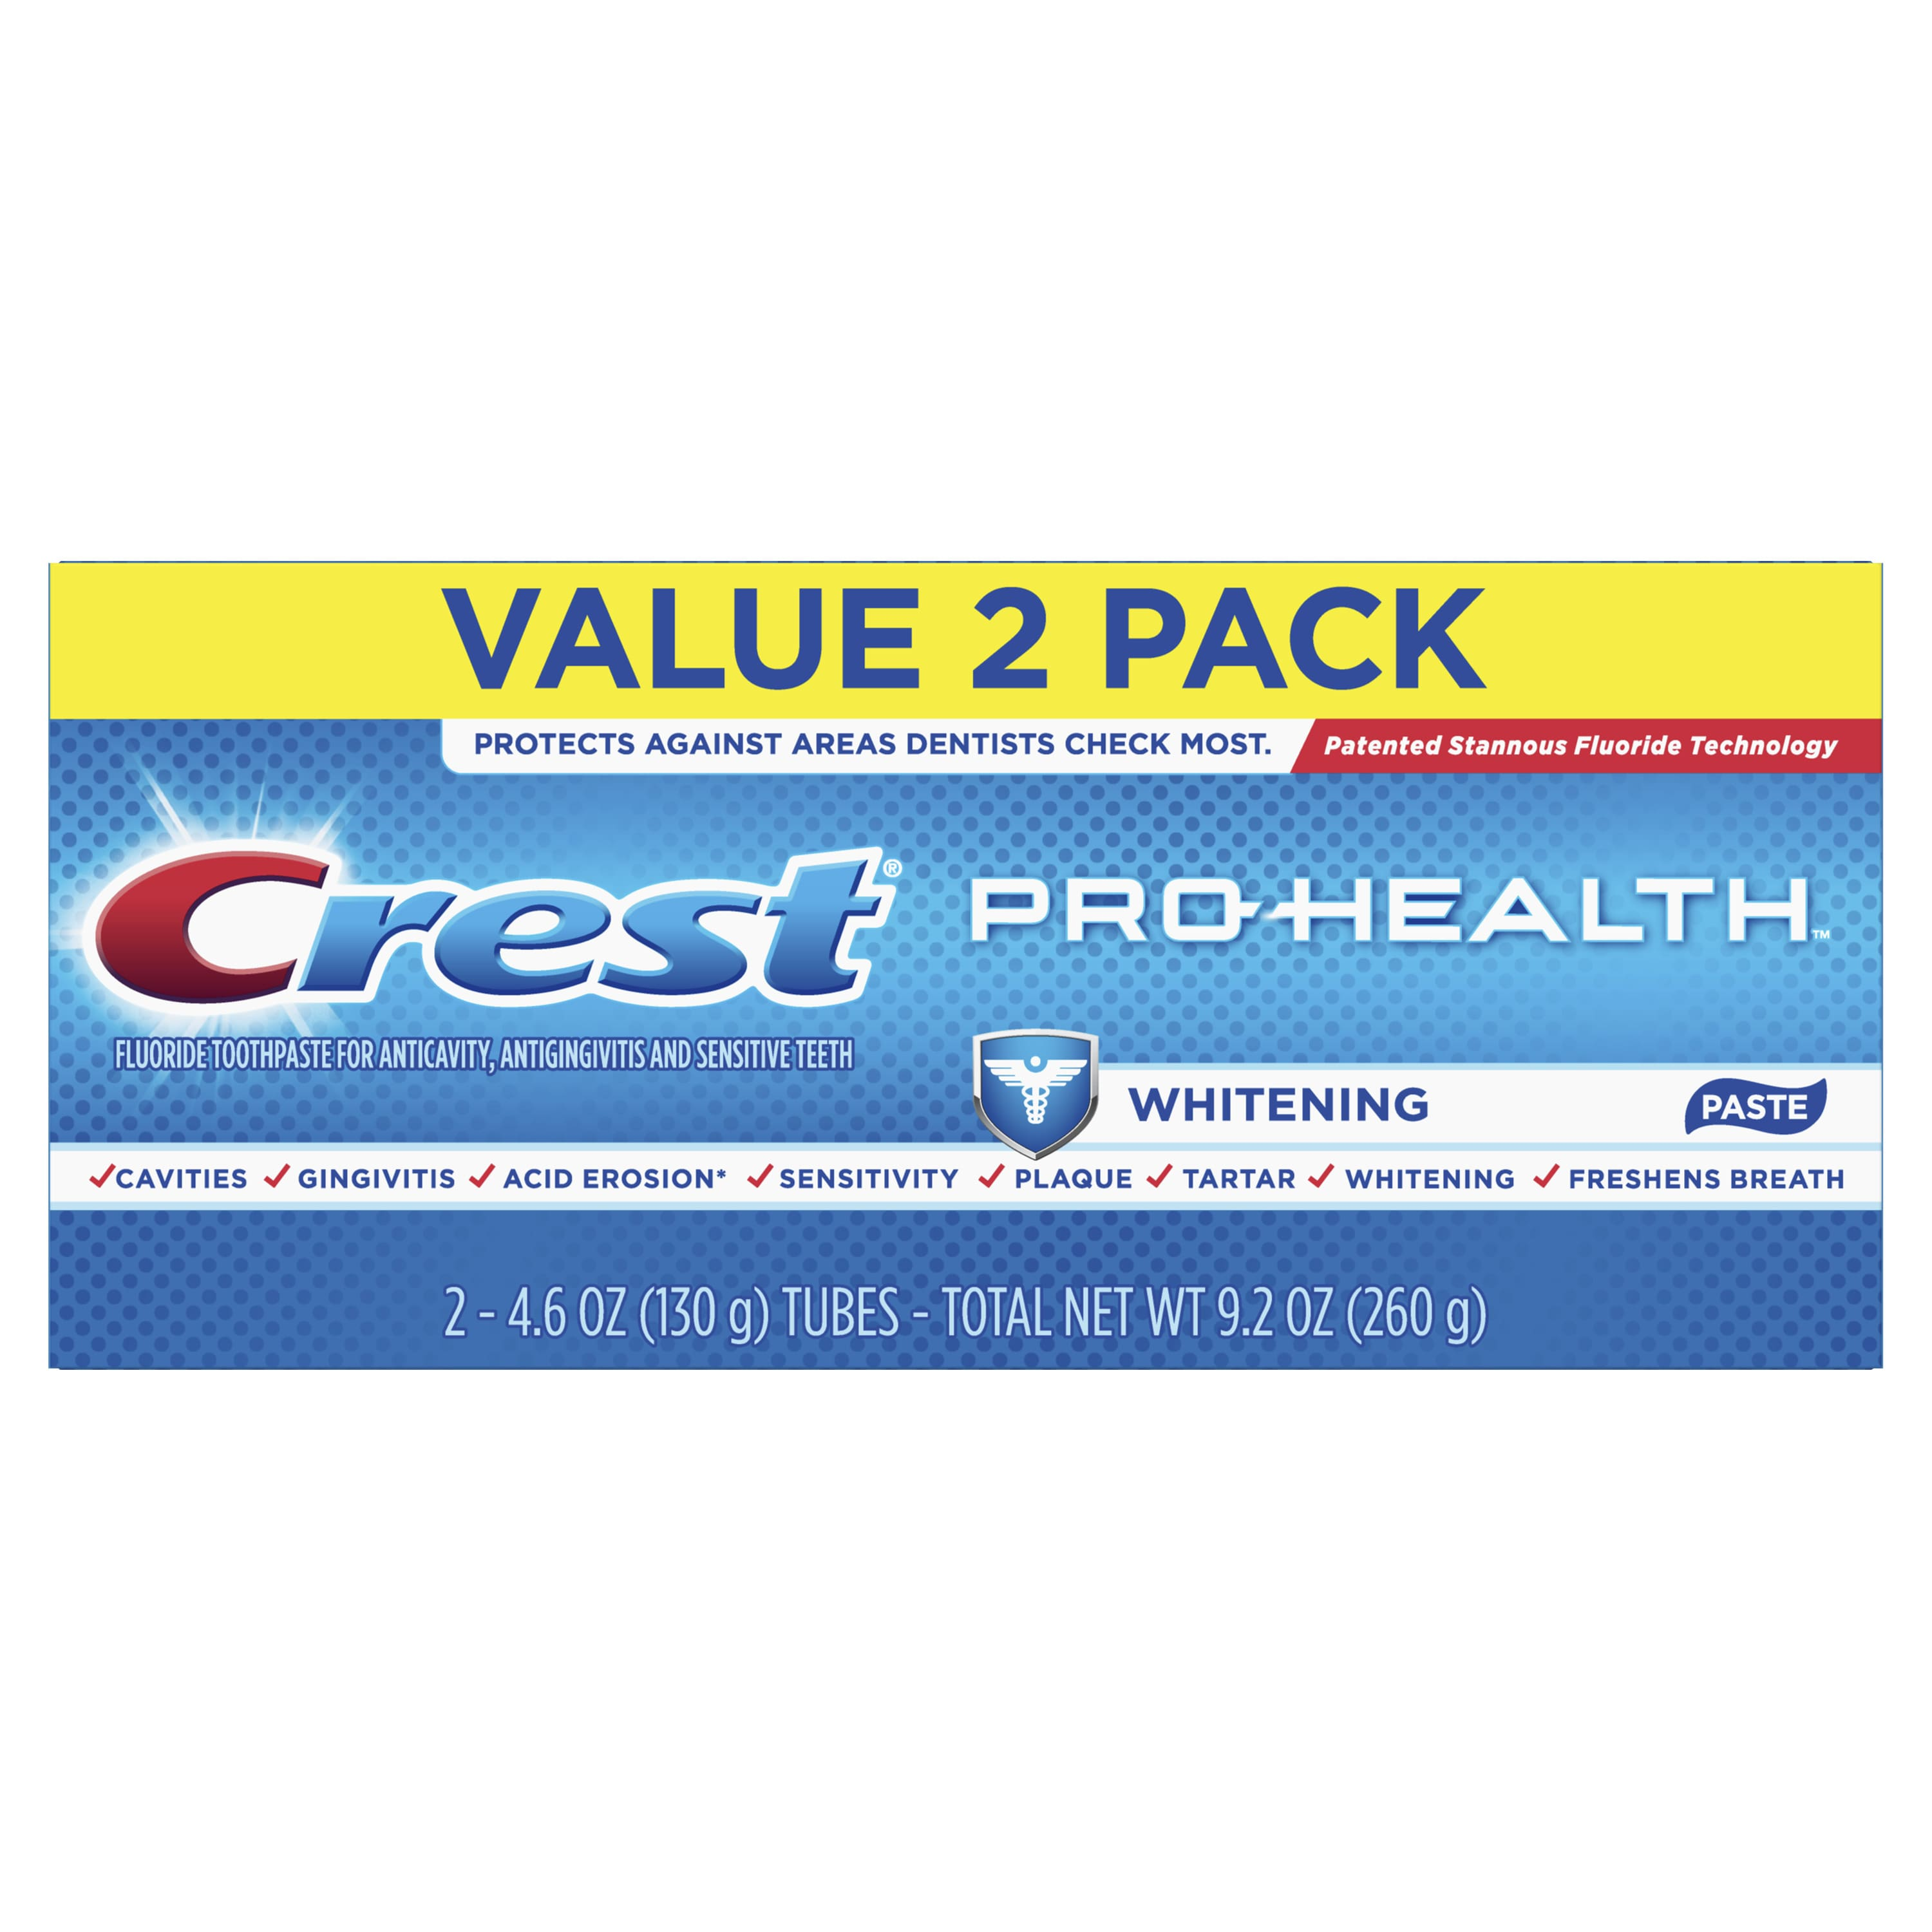 Crest Pro-Health Whitening Toothpaste, 4.6 oz, Pack of 2 - as low as $.50 at Walmart - IN STORE ONLY